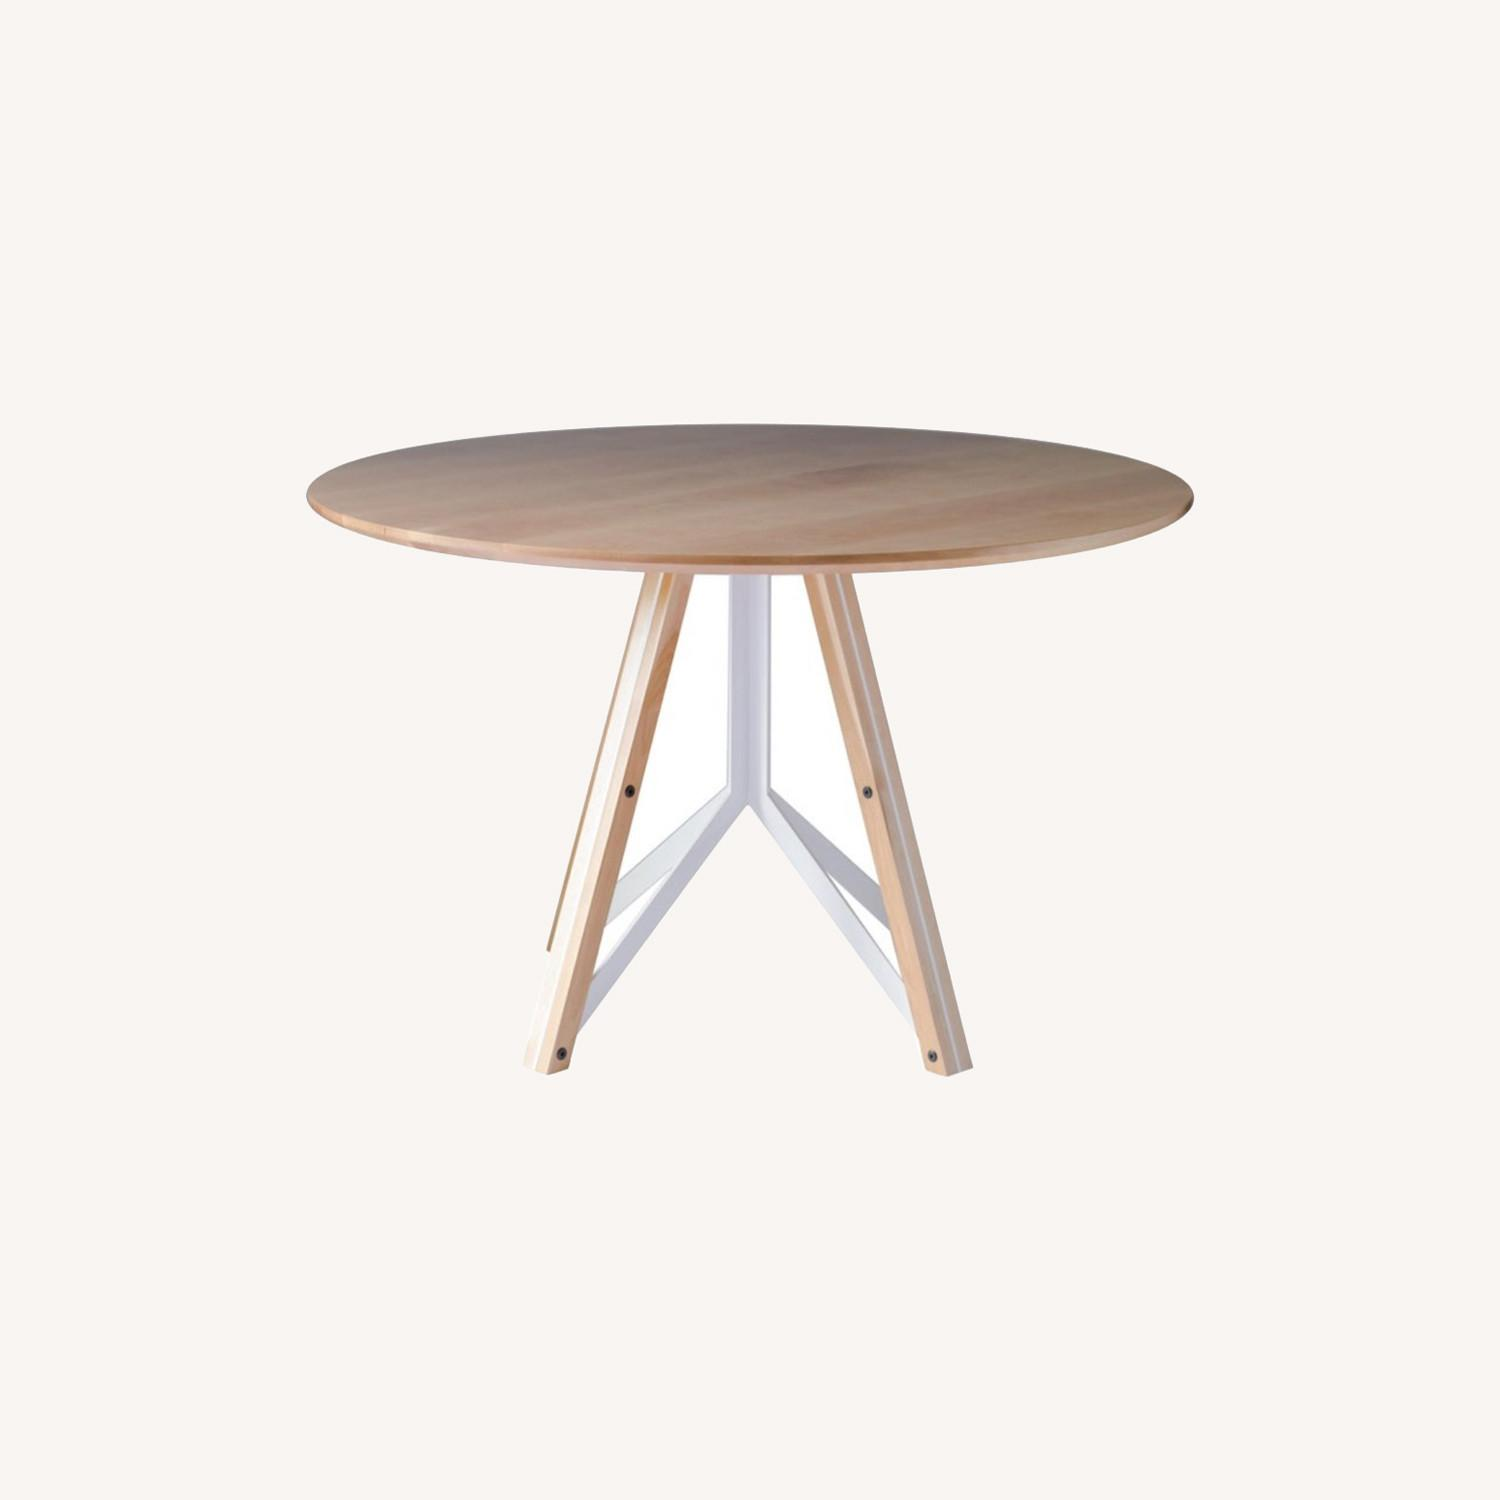 Birch Wood Round Dining Table 60 - image-0